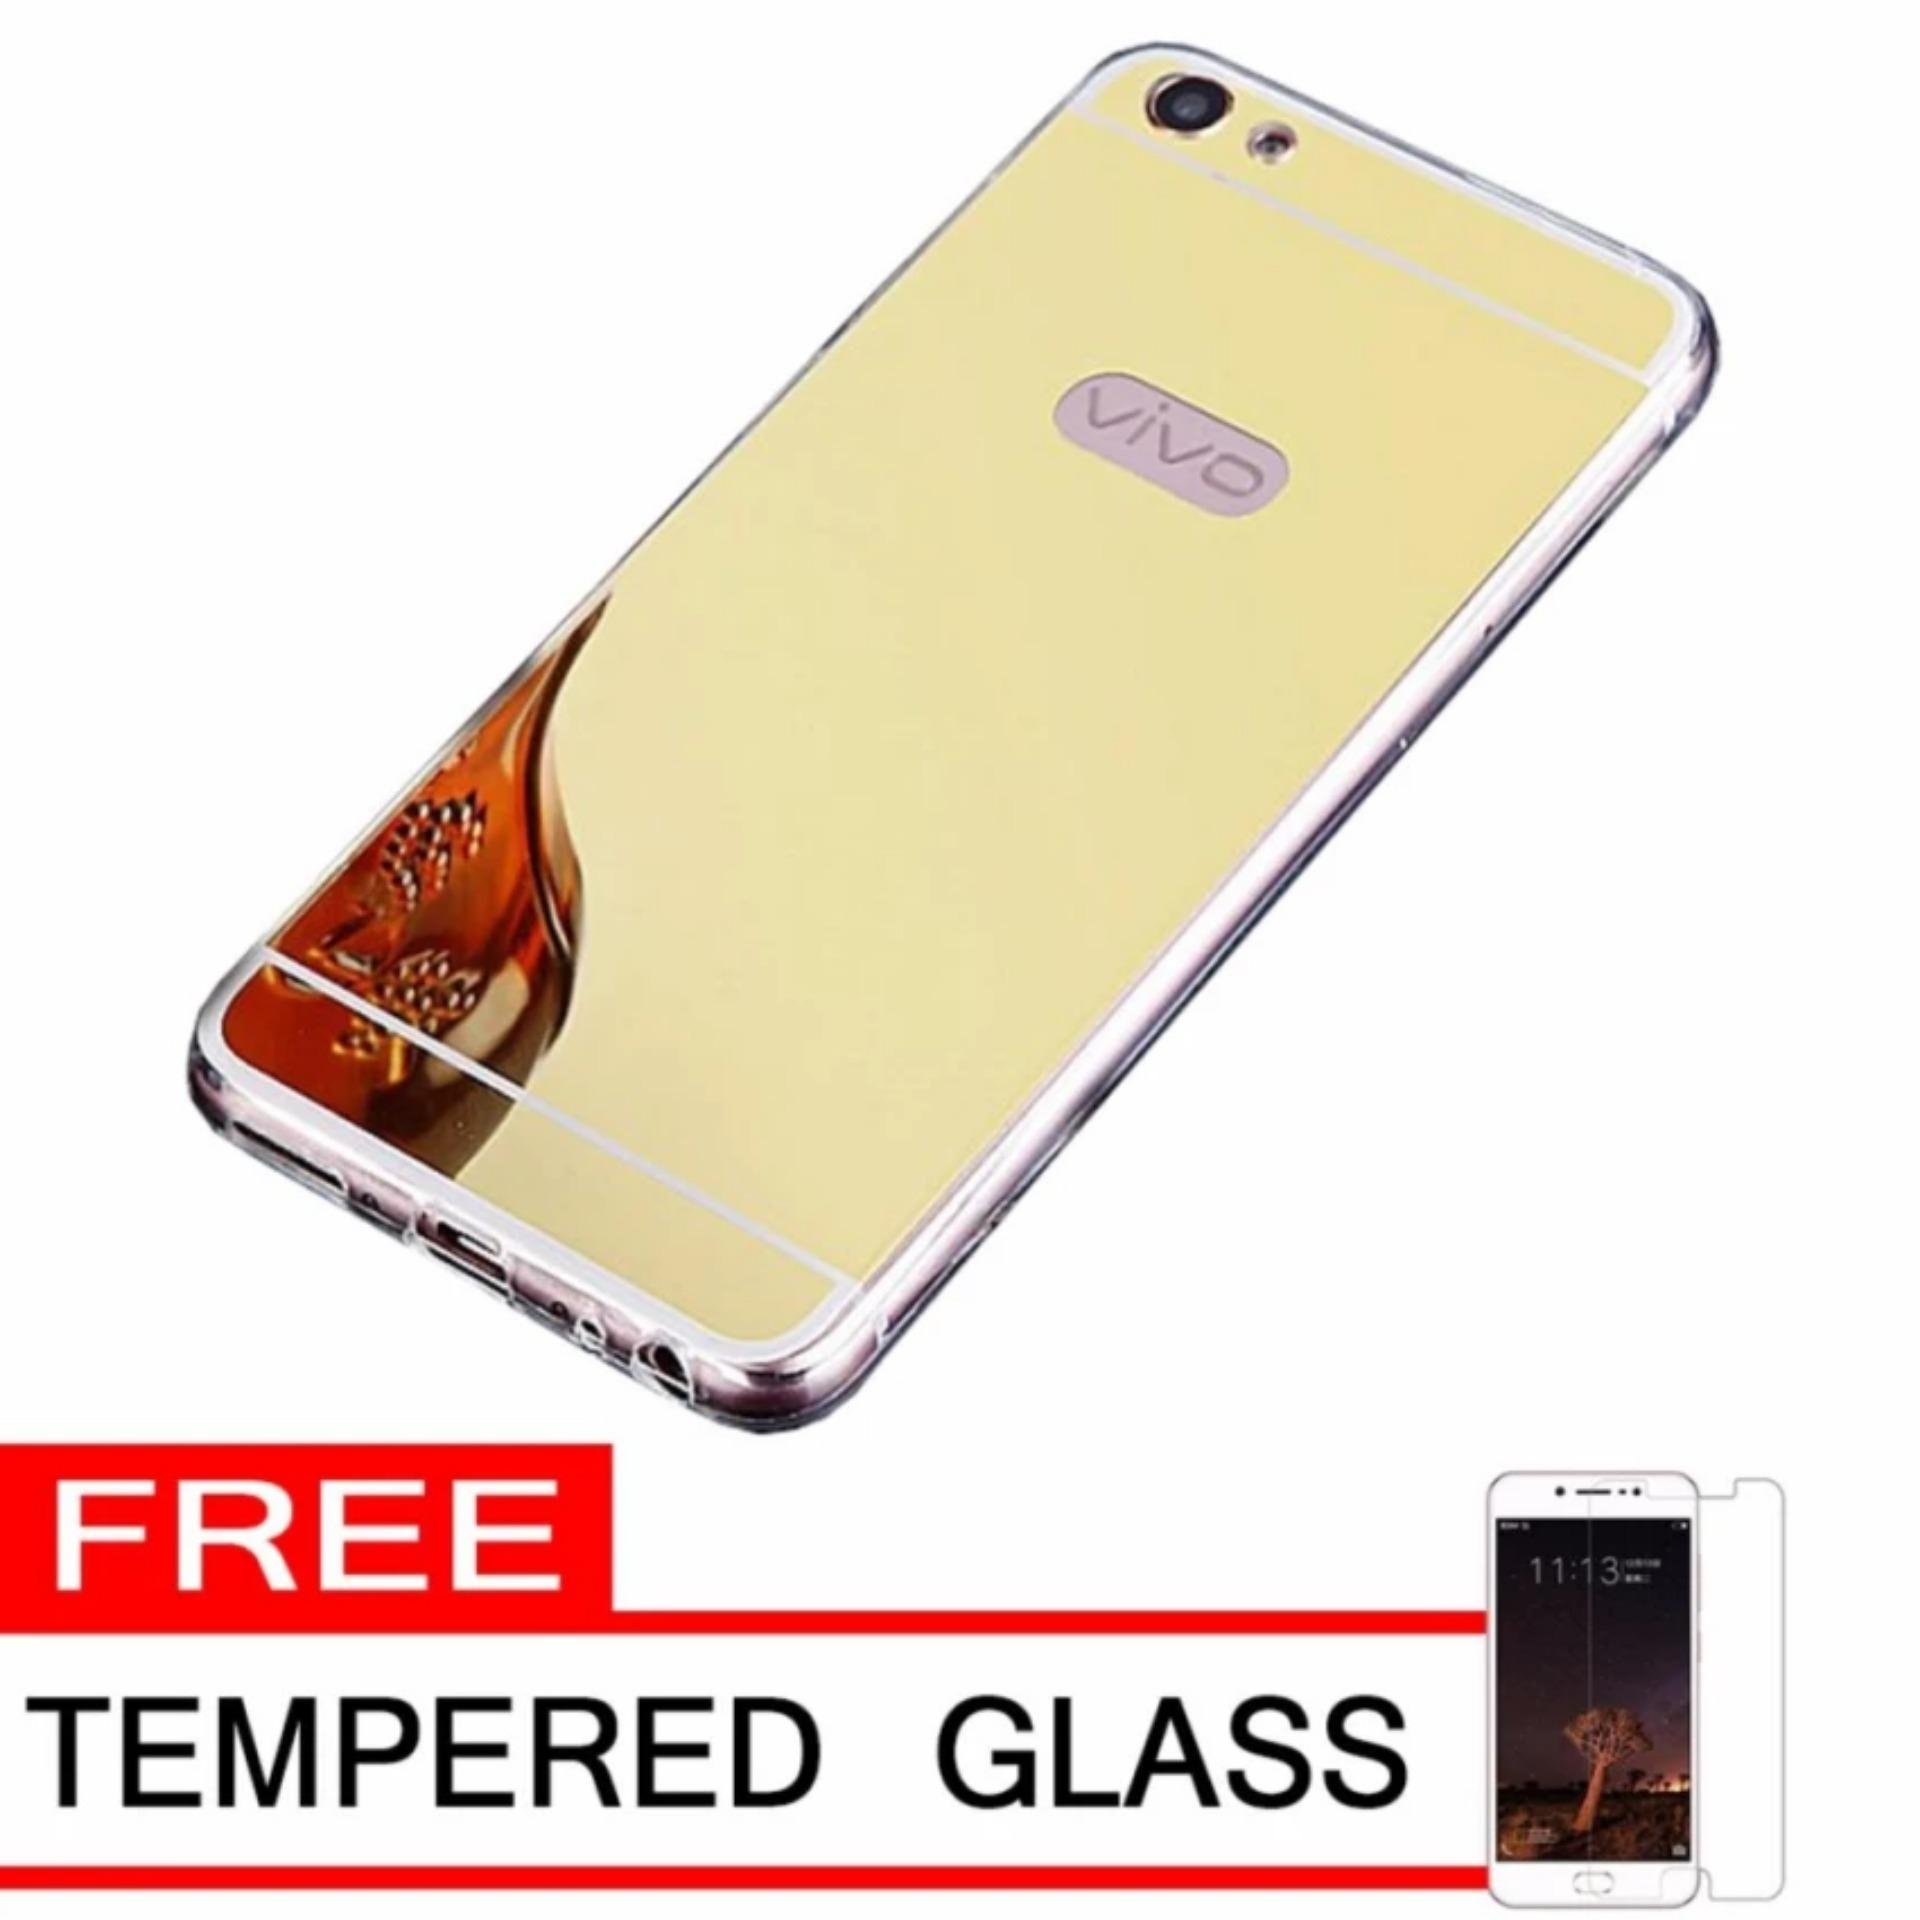 Flash Sale Case Metal for Vivo V5 (Y67) Aluminium Bumper With Mirror BackdoorSlide - Gold + Free Tempered Glass